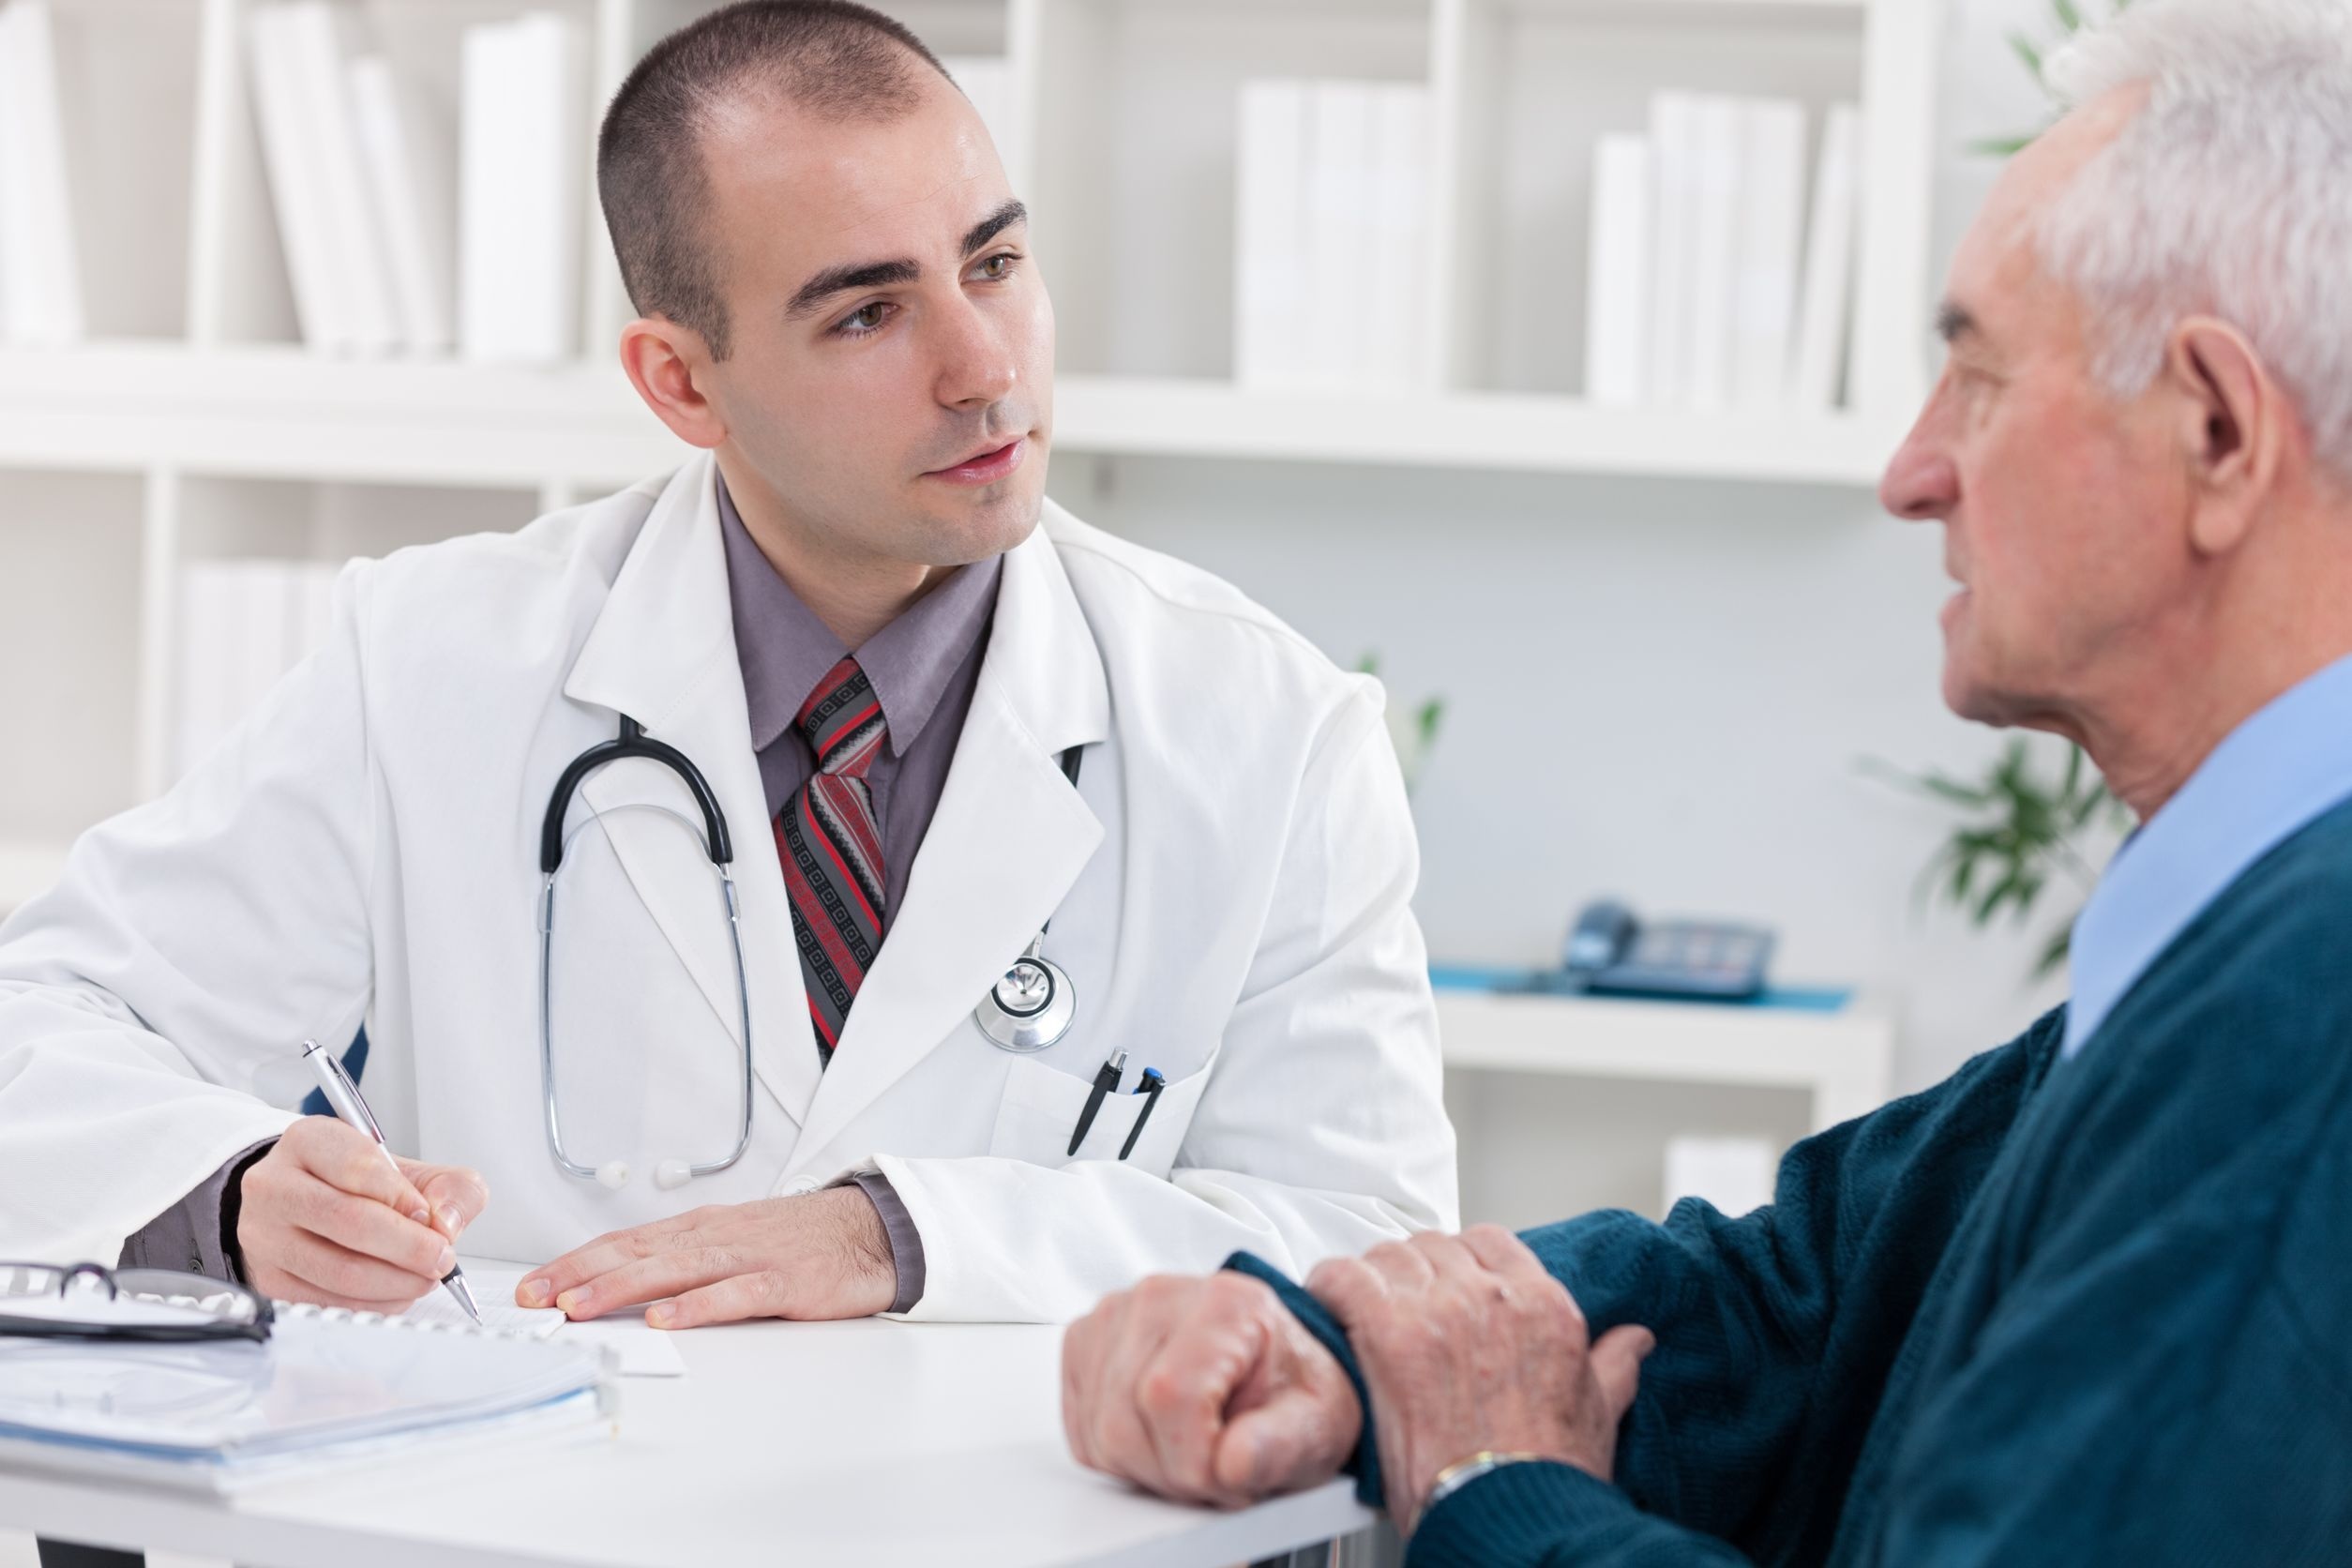 Doctor check up